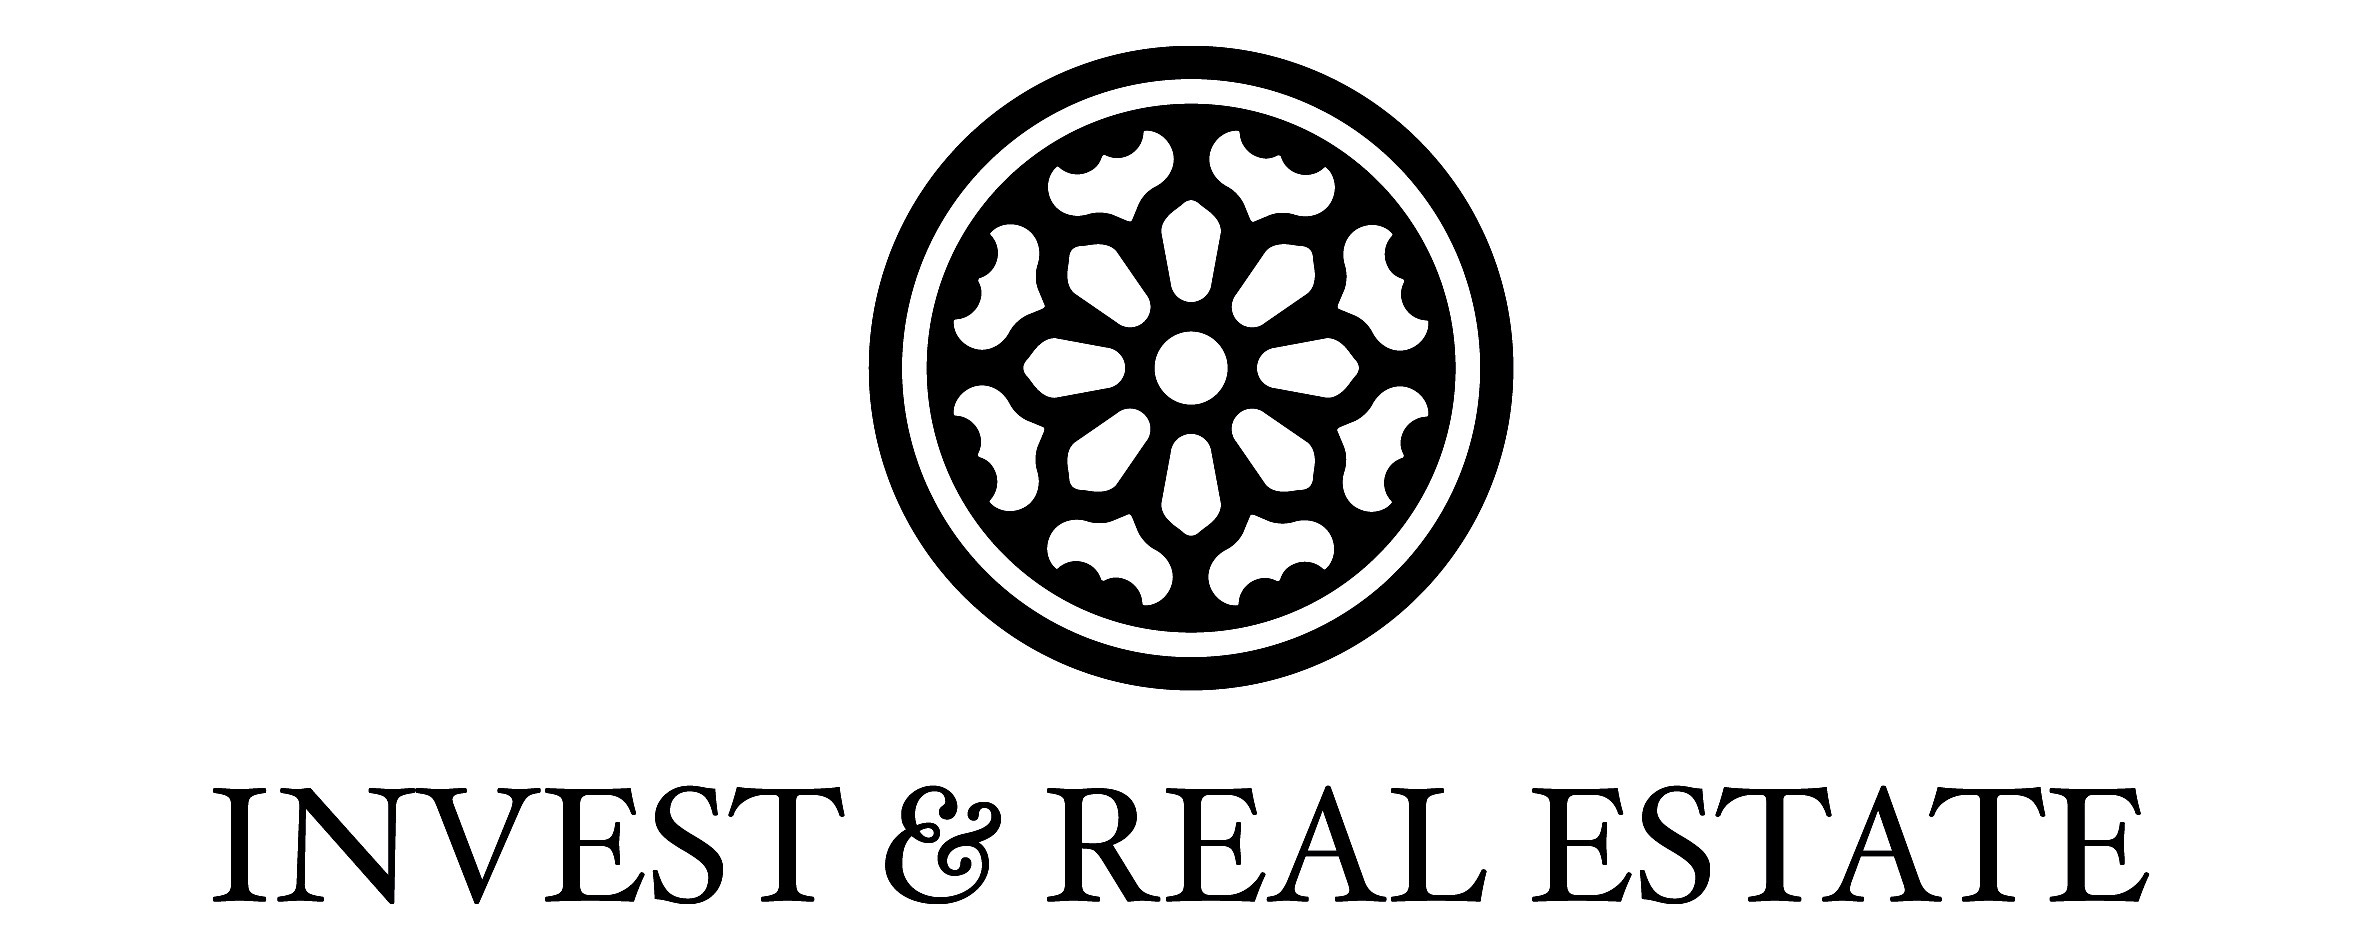 Invest & Real Estate